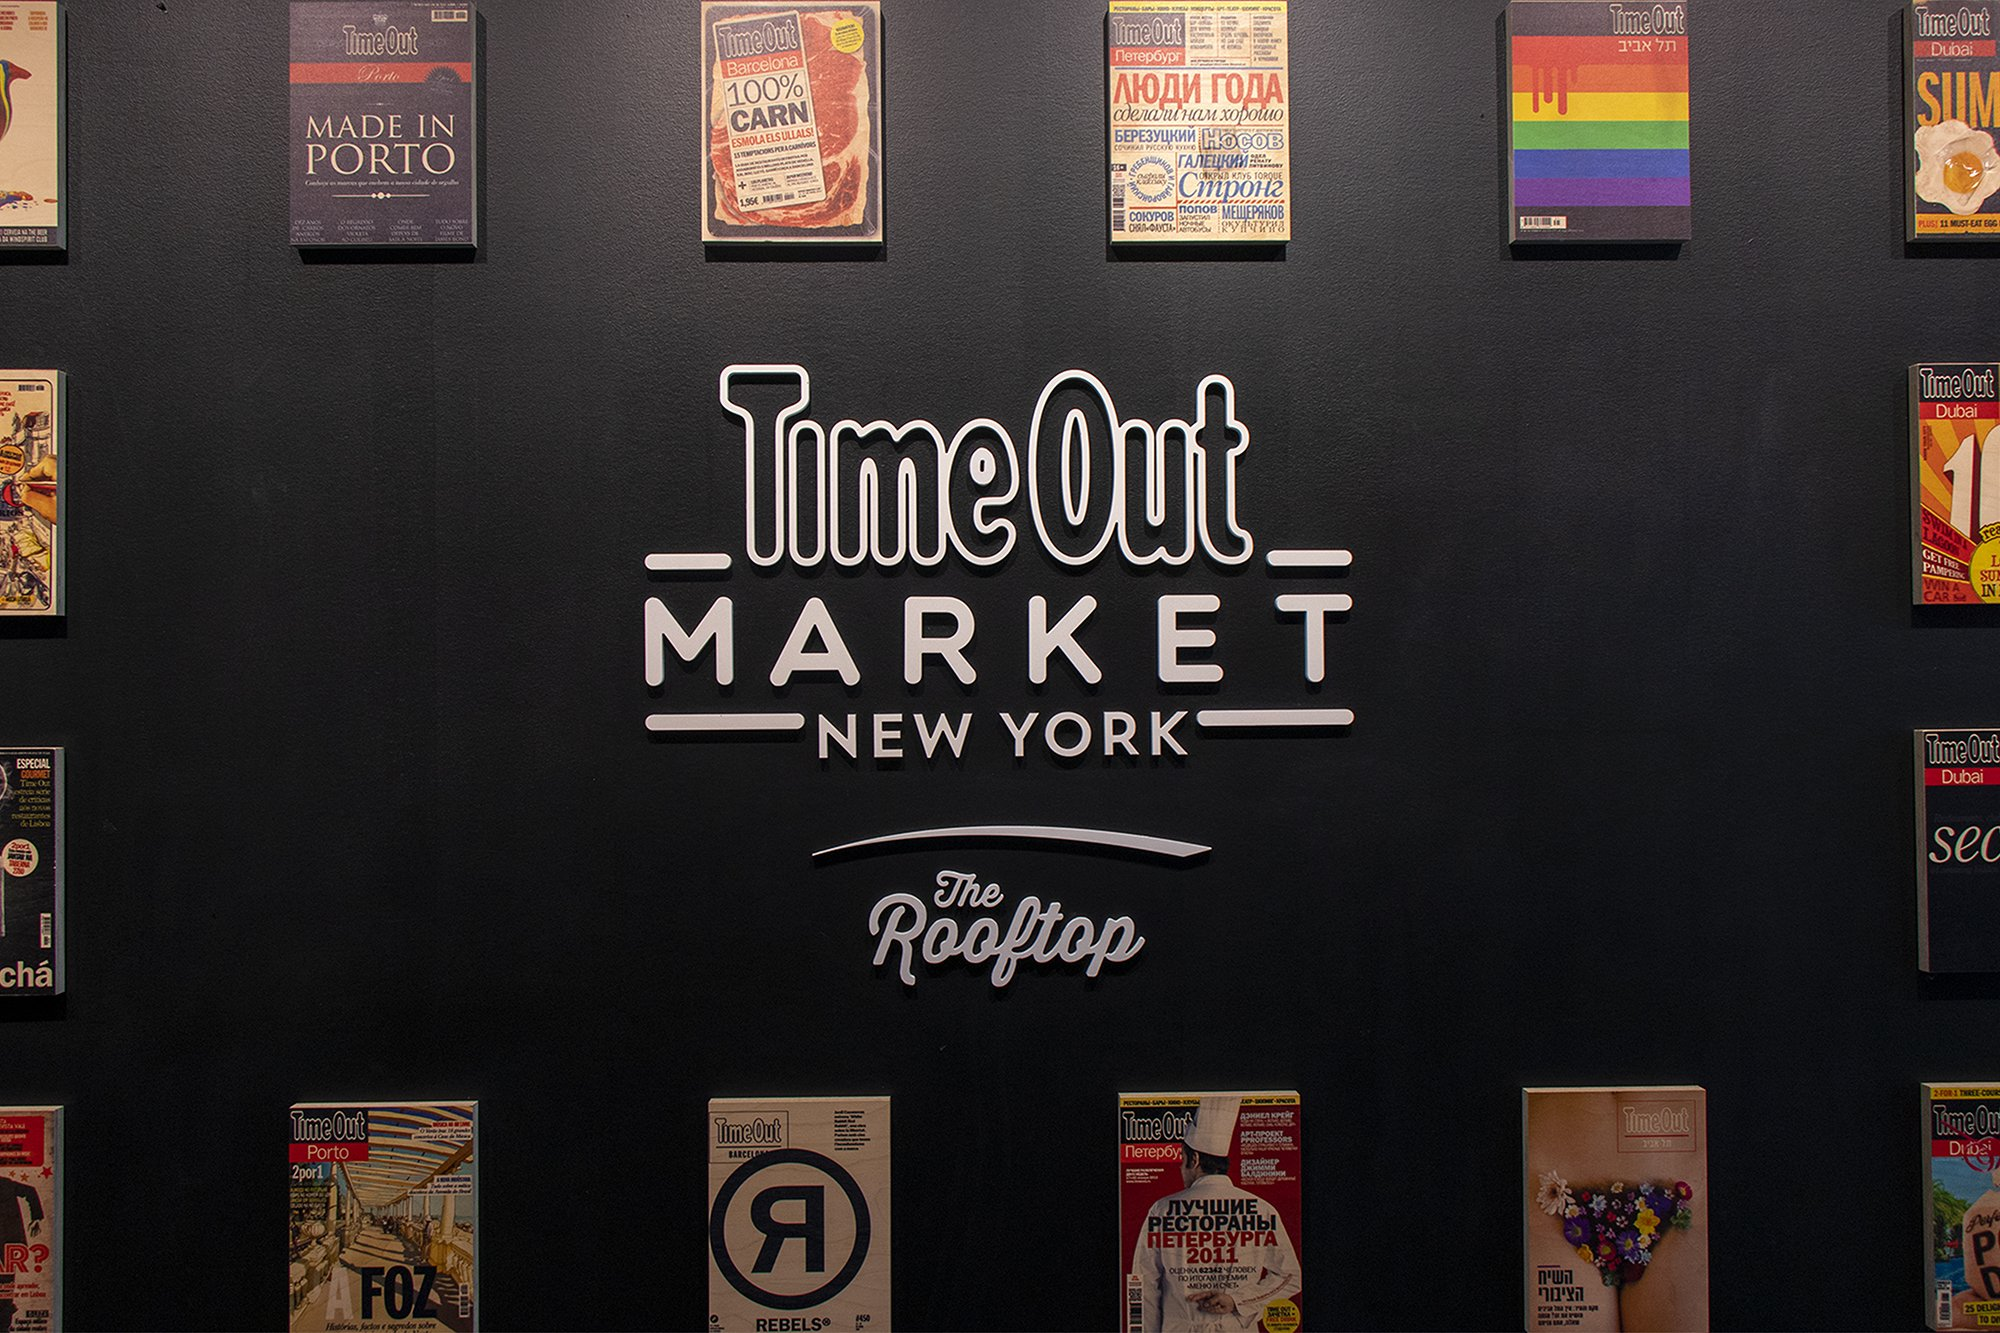 Time Out Market, New York sign